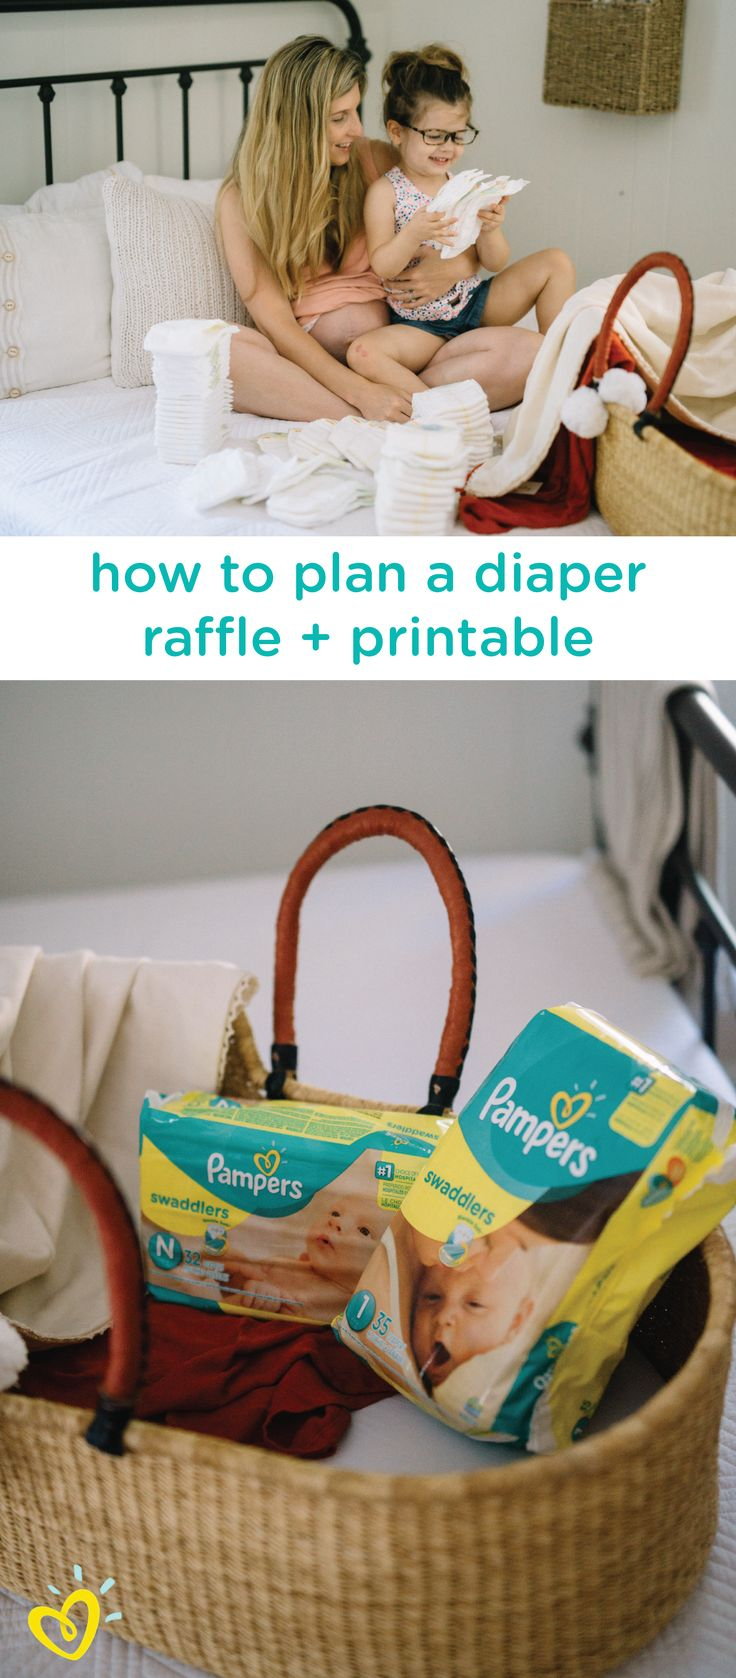 This DIY diaper raffle can be such a fun baby shower game for your friends and family to enjoy. Use these free printables to raffle off themed gift baskets to every guest who brings a package of Pampers Swaddlers diapers to your party. Click here to learn more.